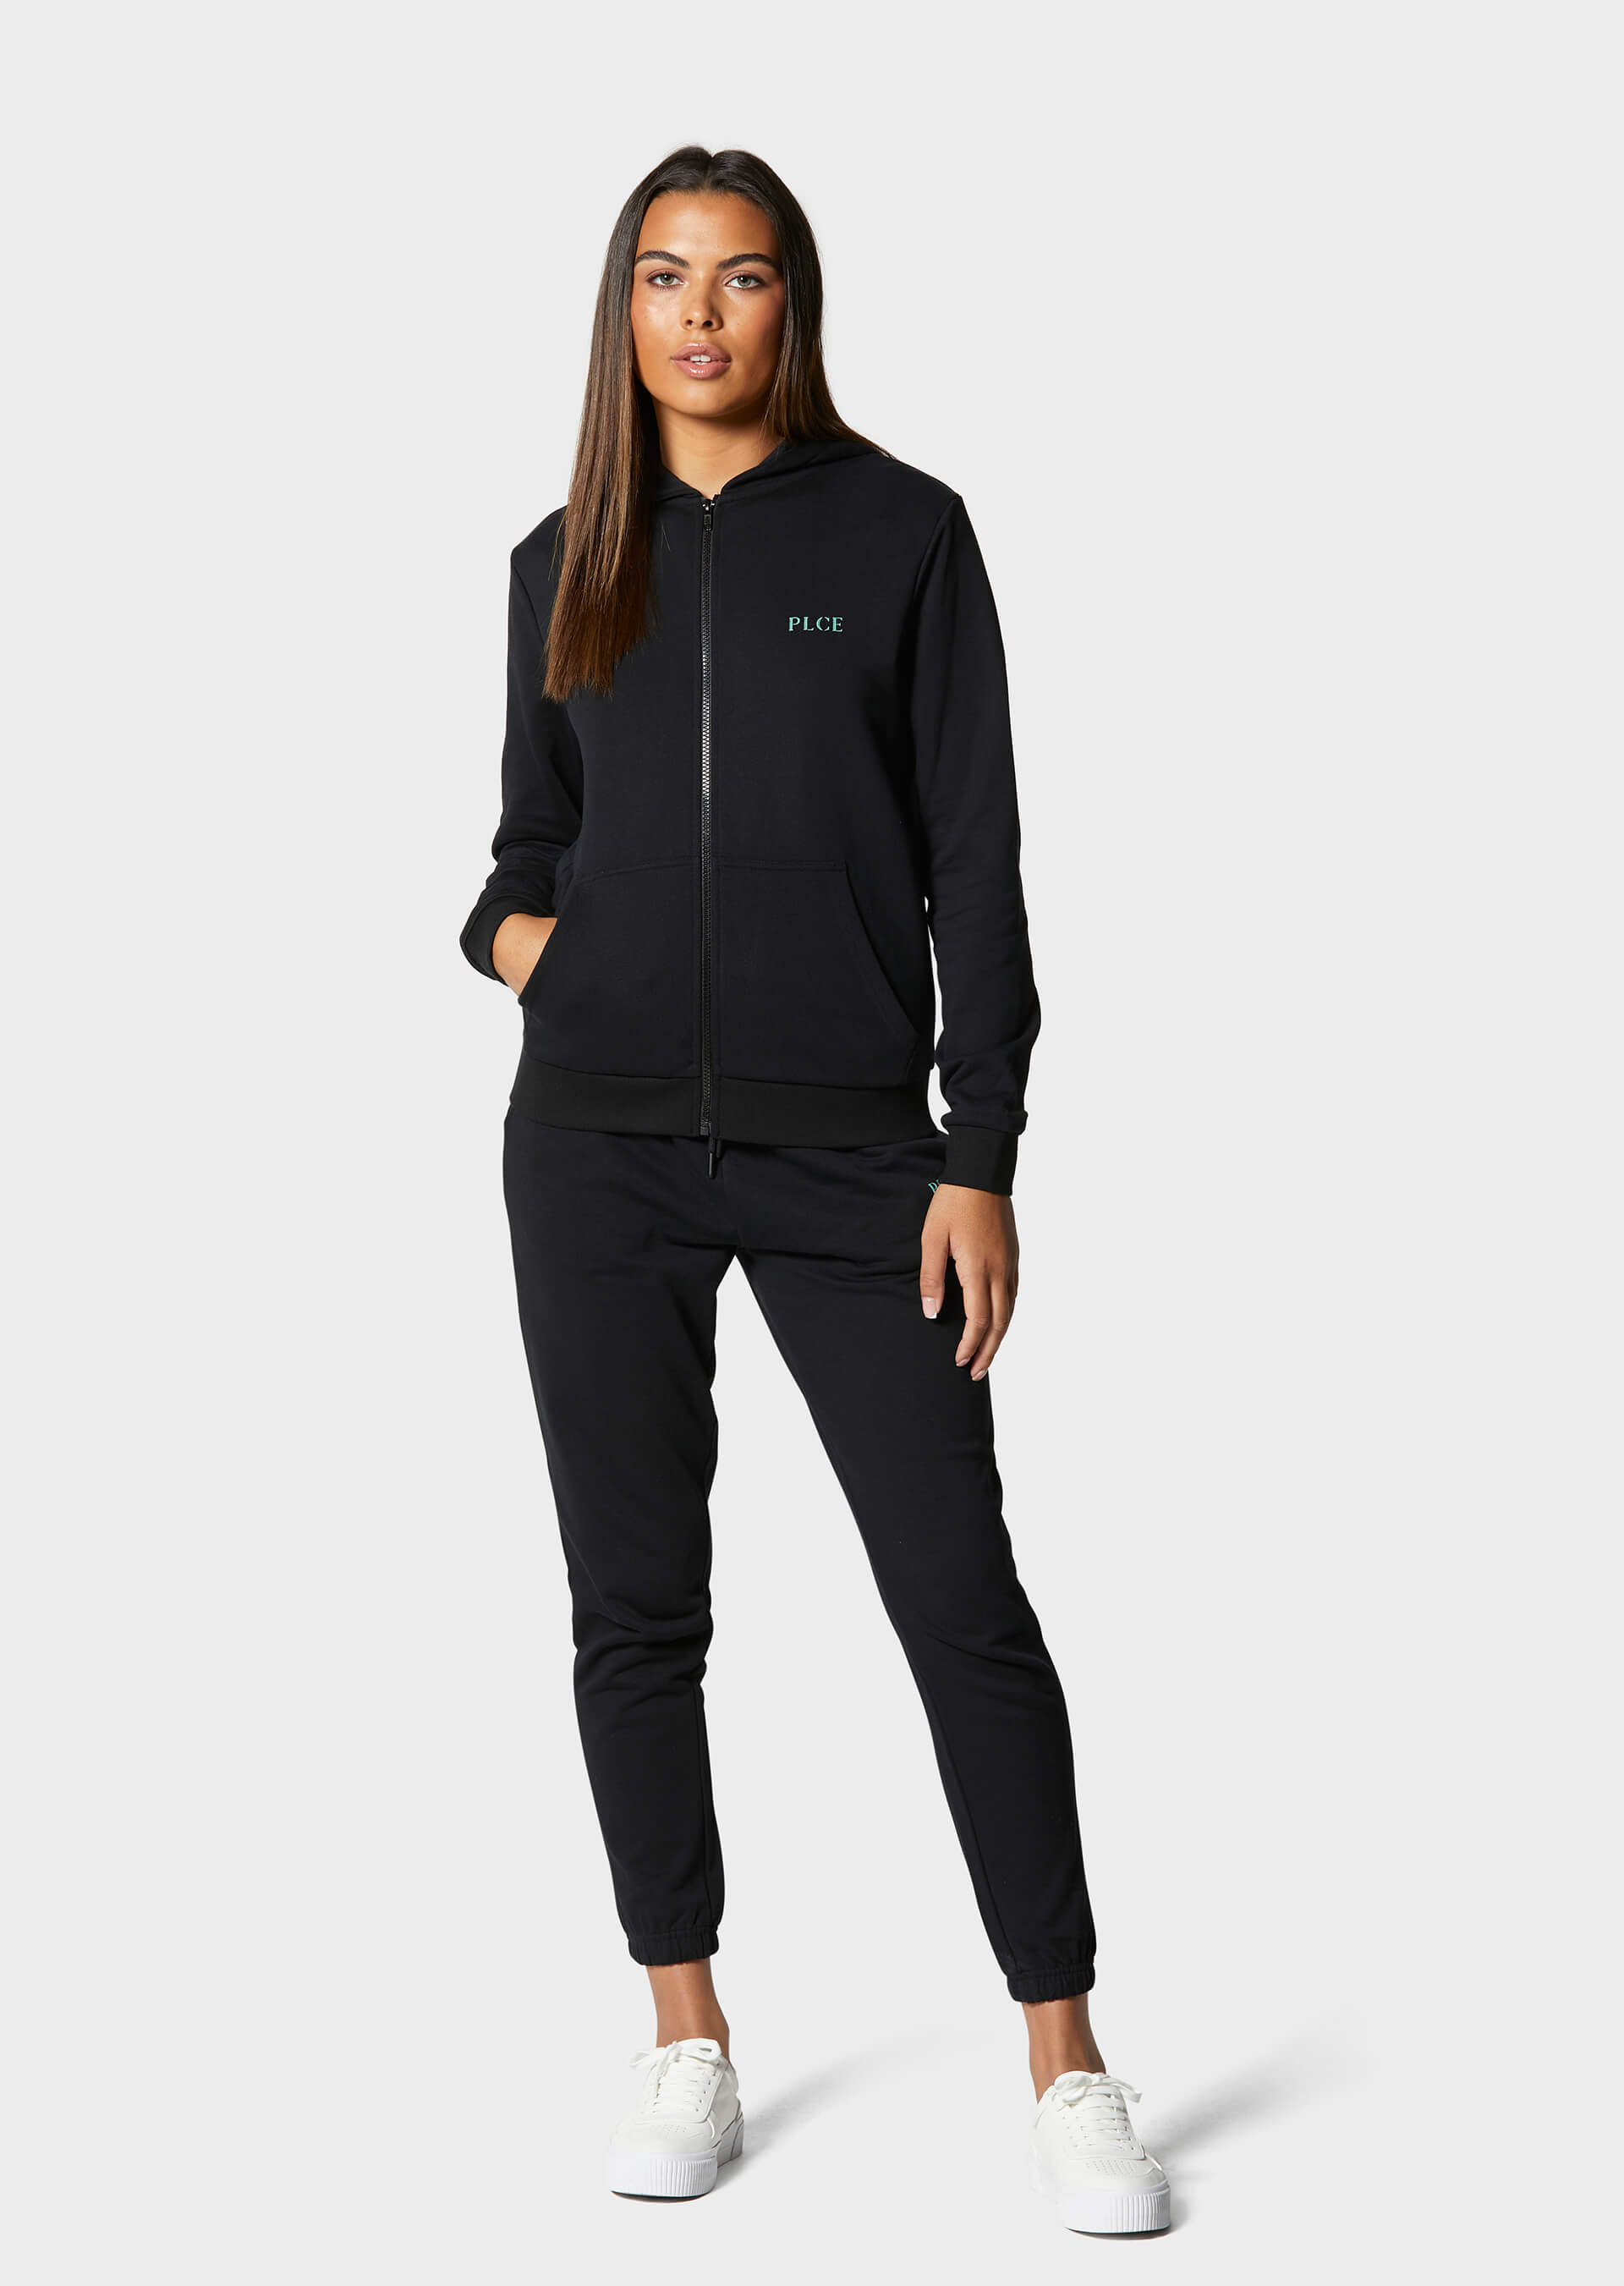 Milly Black Jogger second_image